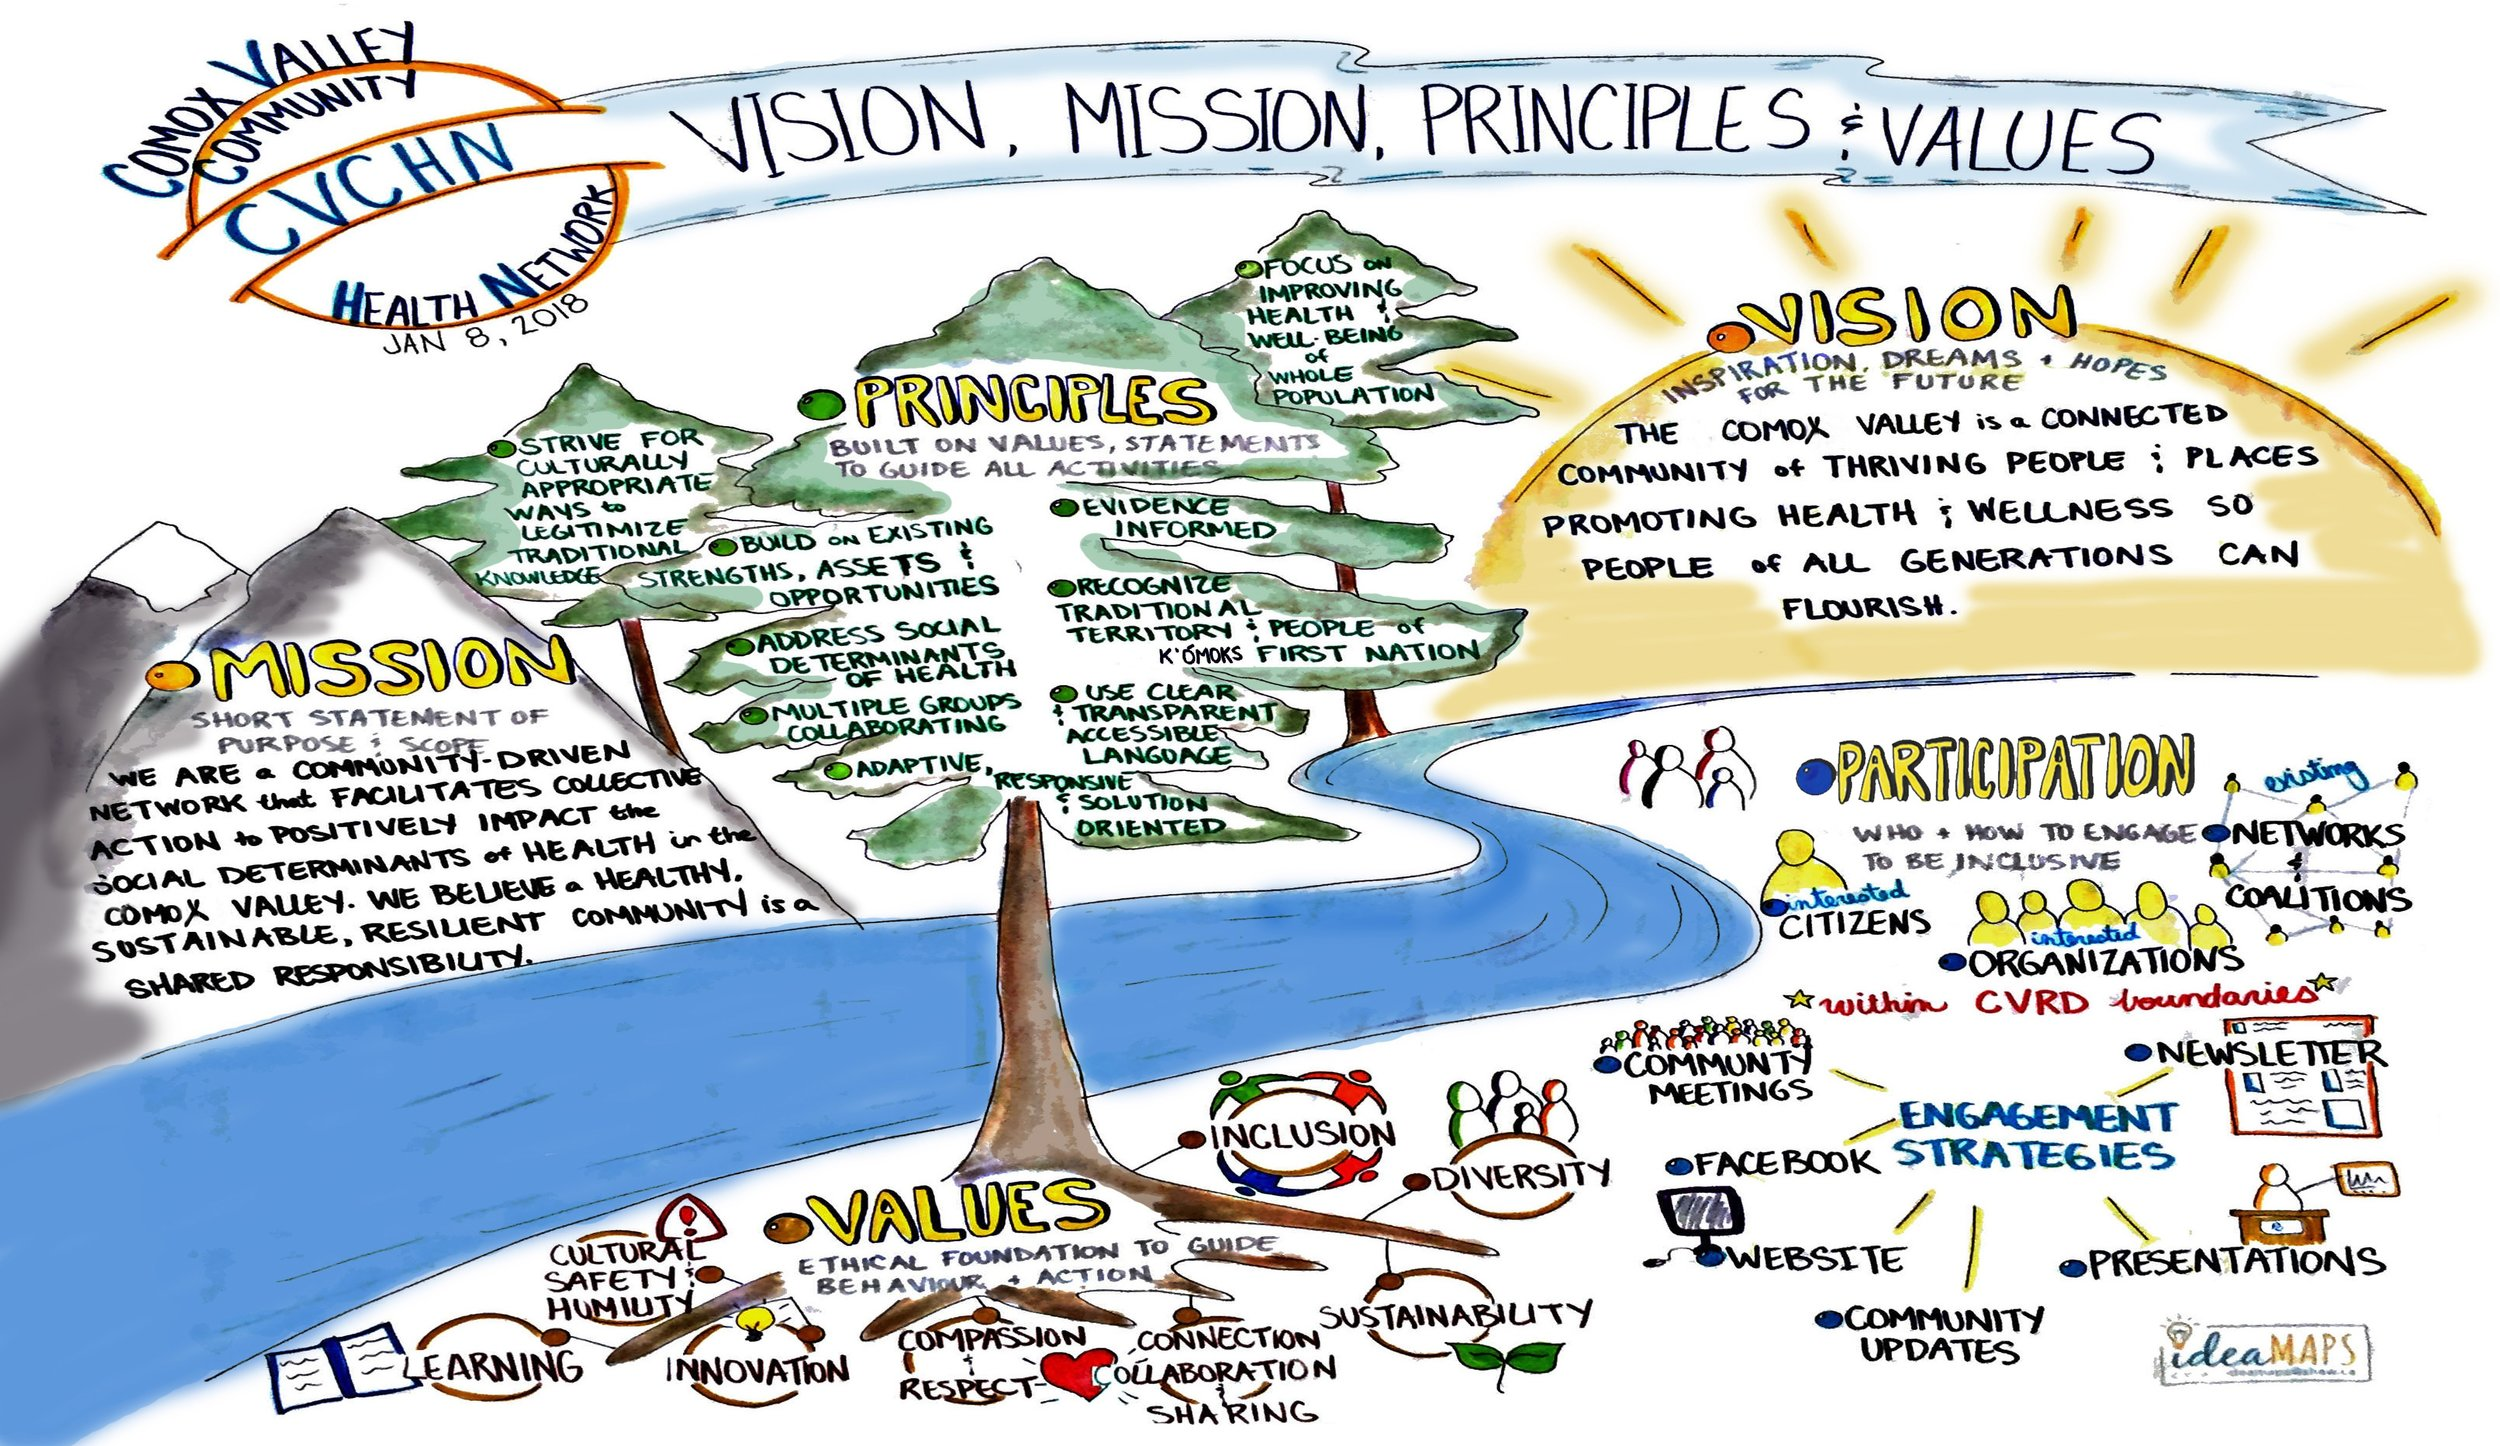 Poster with vision, mission, principles, values written across the top and details written out over a landscape of mountains, trees, and river.